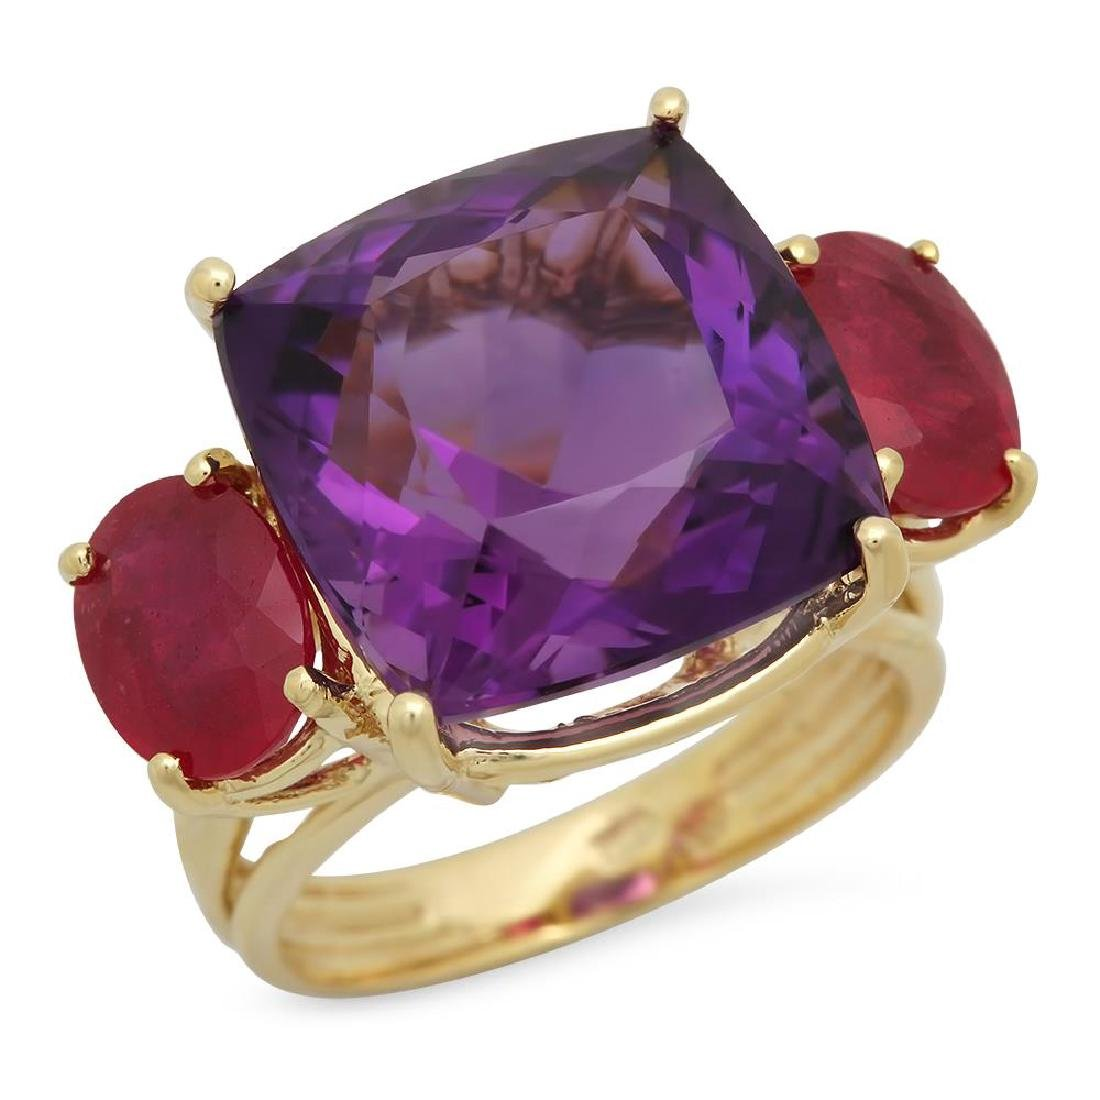 14K Gold 12.32ct Amethyst 3.64ct Ruby Ring